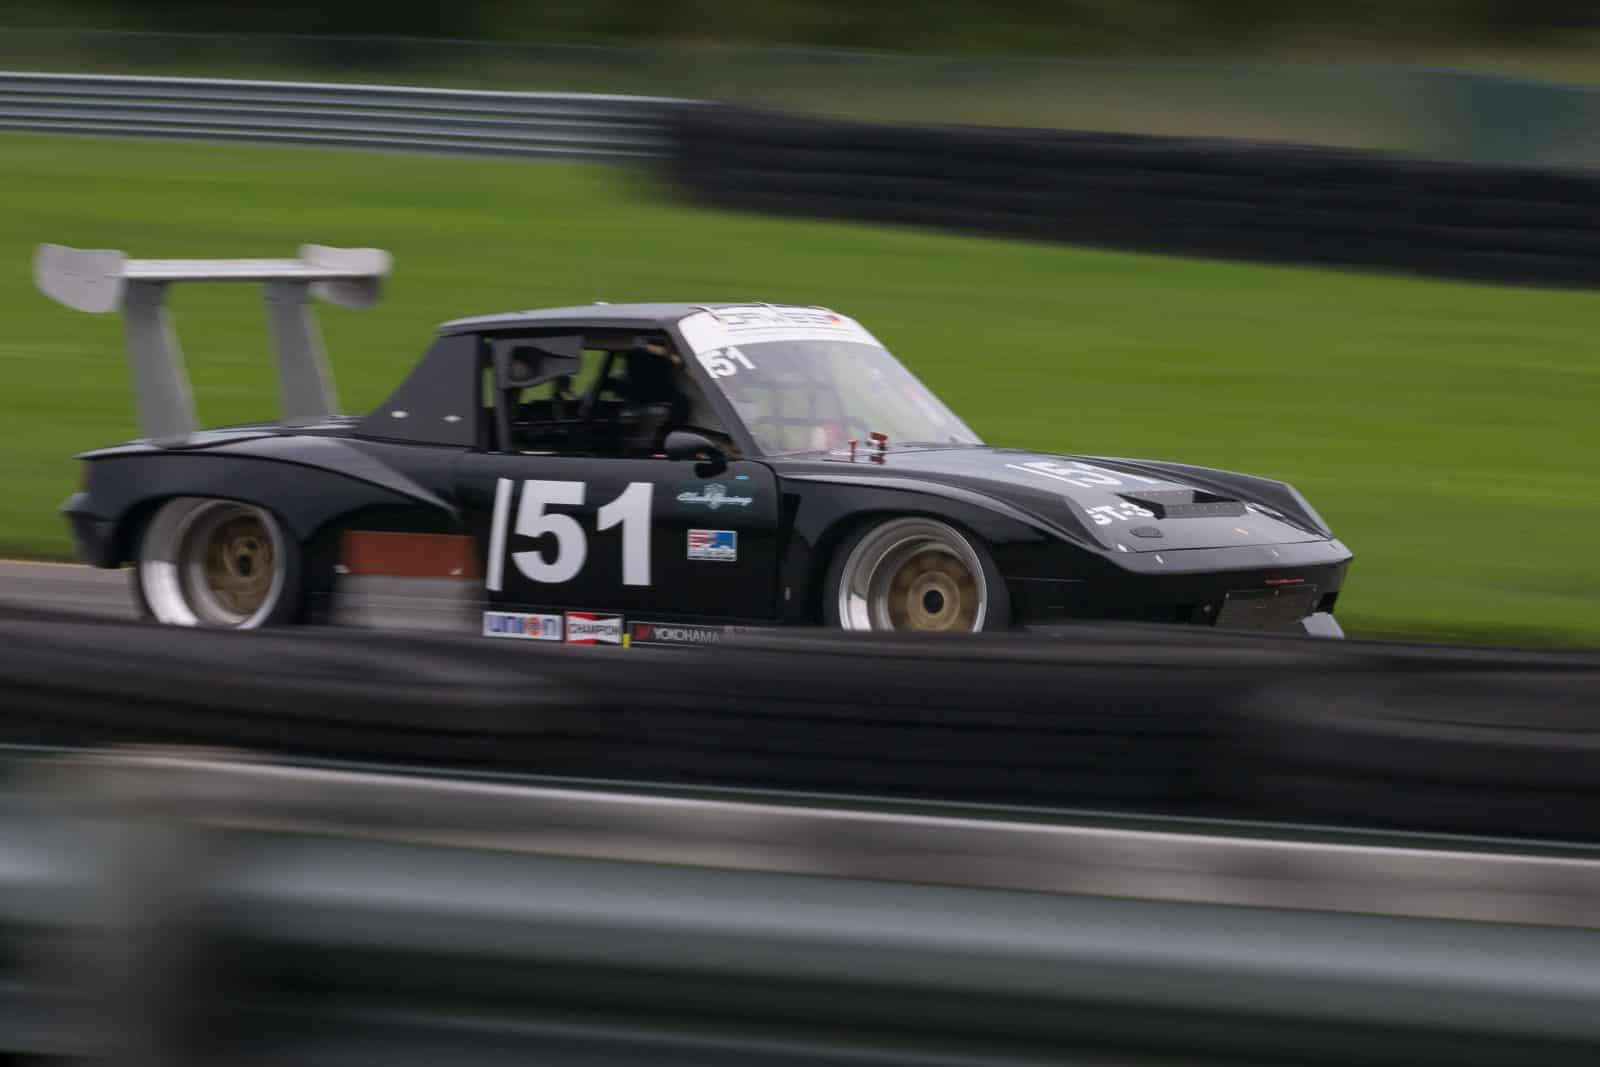 914 Porsche racing with the PCA at NJMP